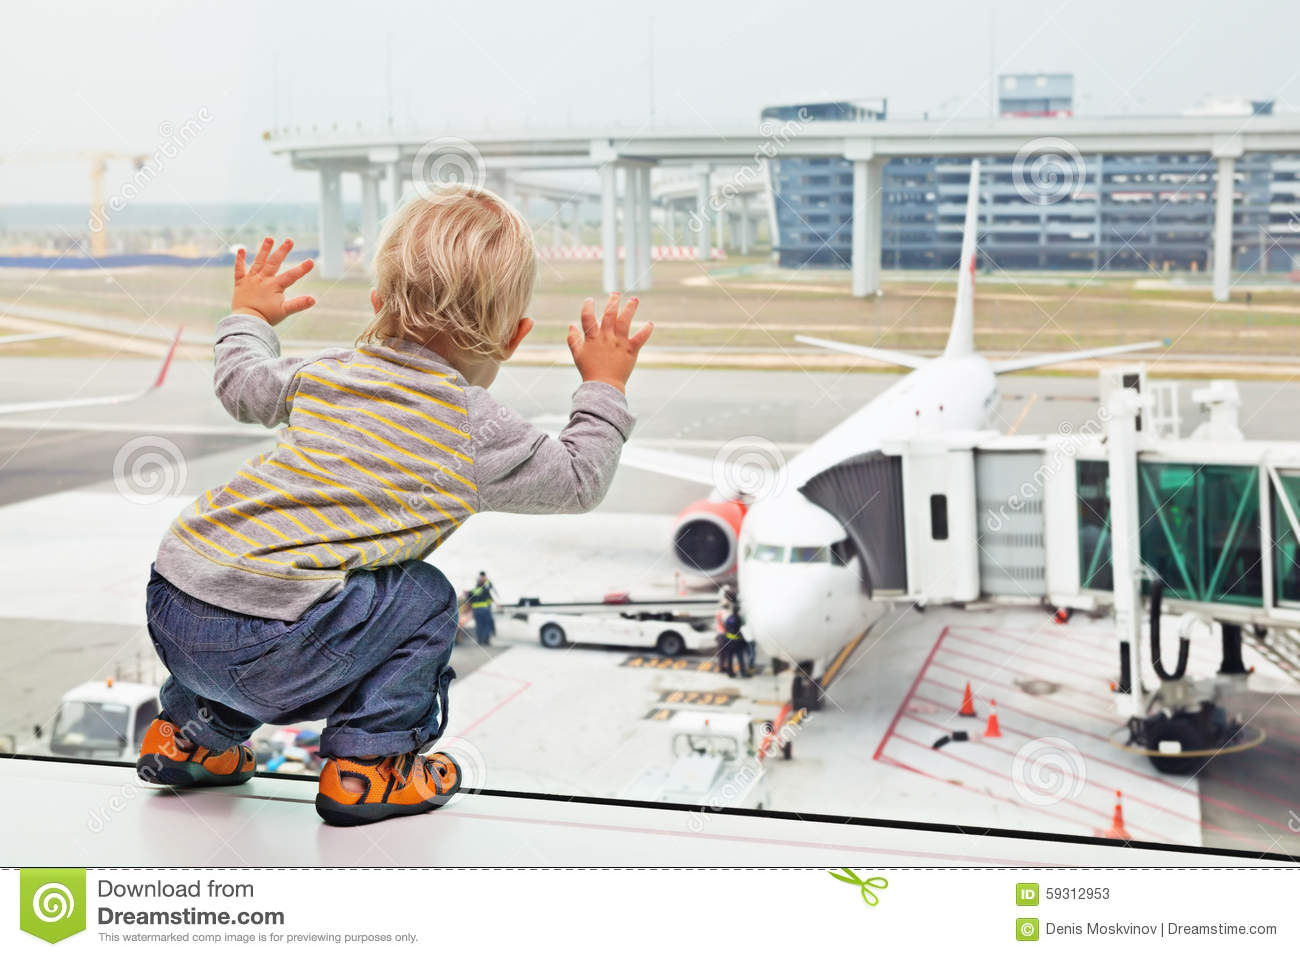 Child, airport, travel, baby, family, vacation, gate, boy, airplane, plane, aircraft, passenger, boarding, departure, summer, wait